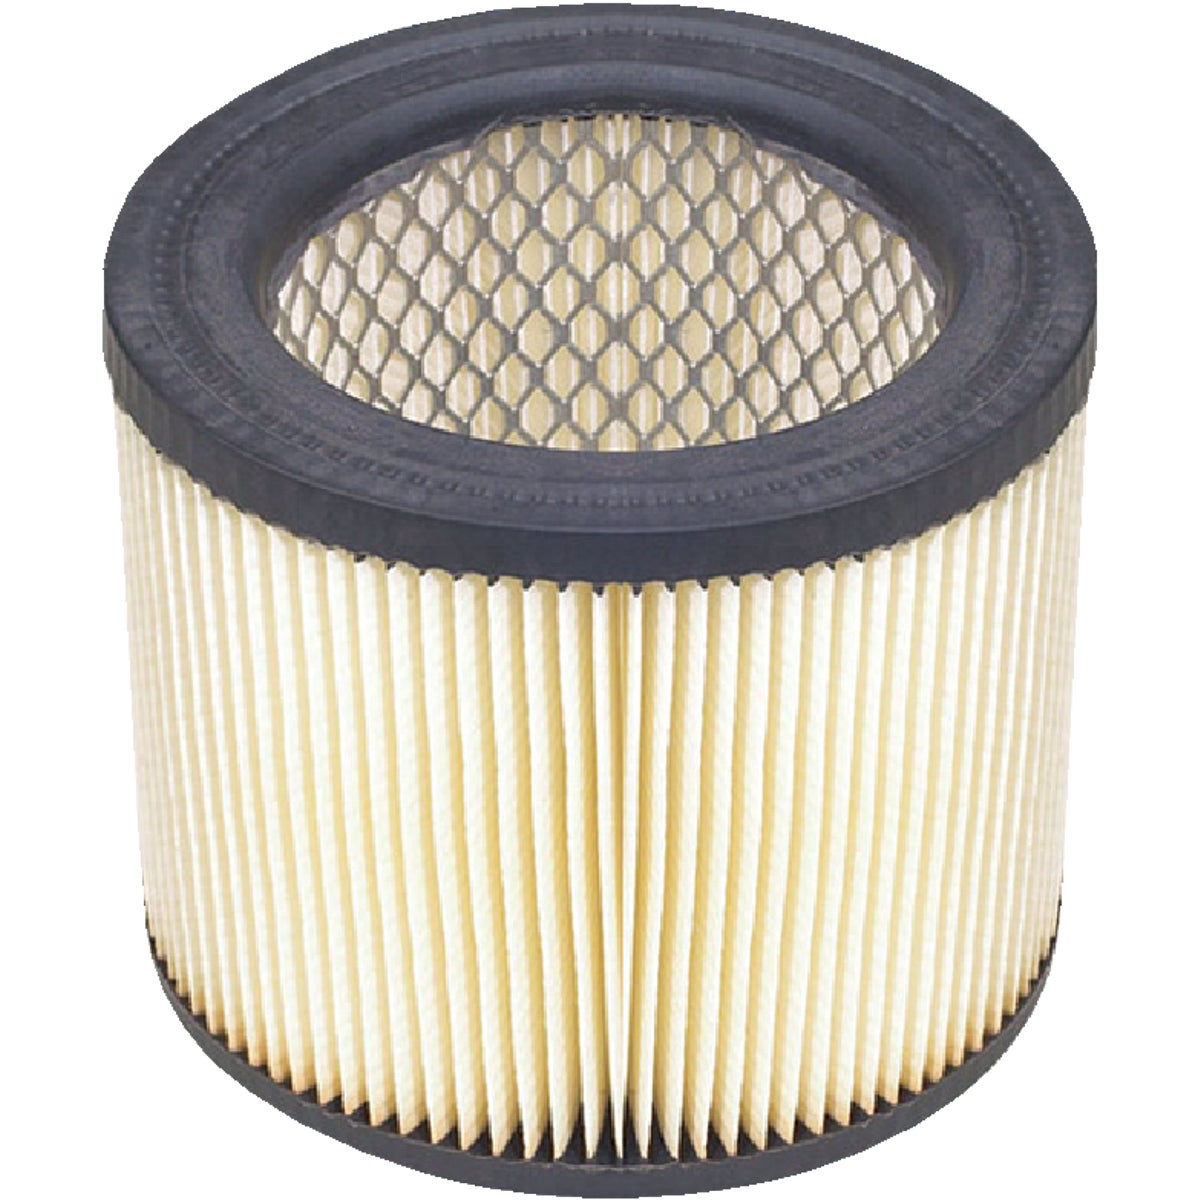 HANG-UP VAC FILTER - 903-98-00 by Shop Vac Corp